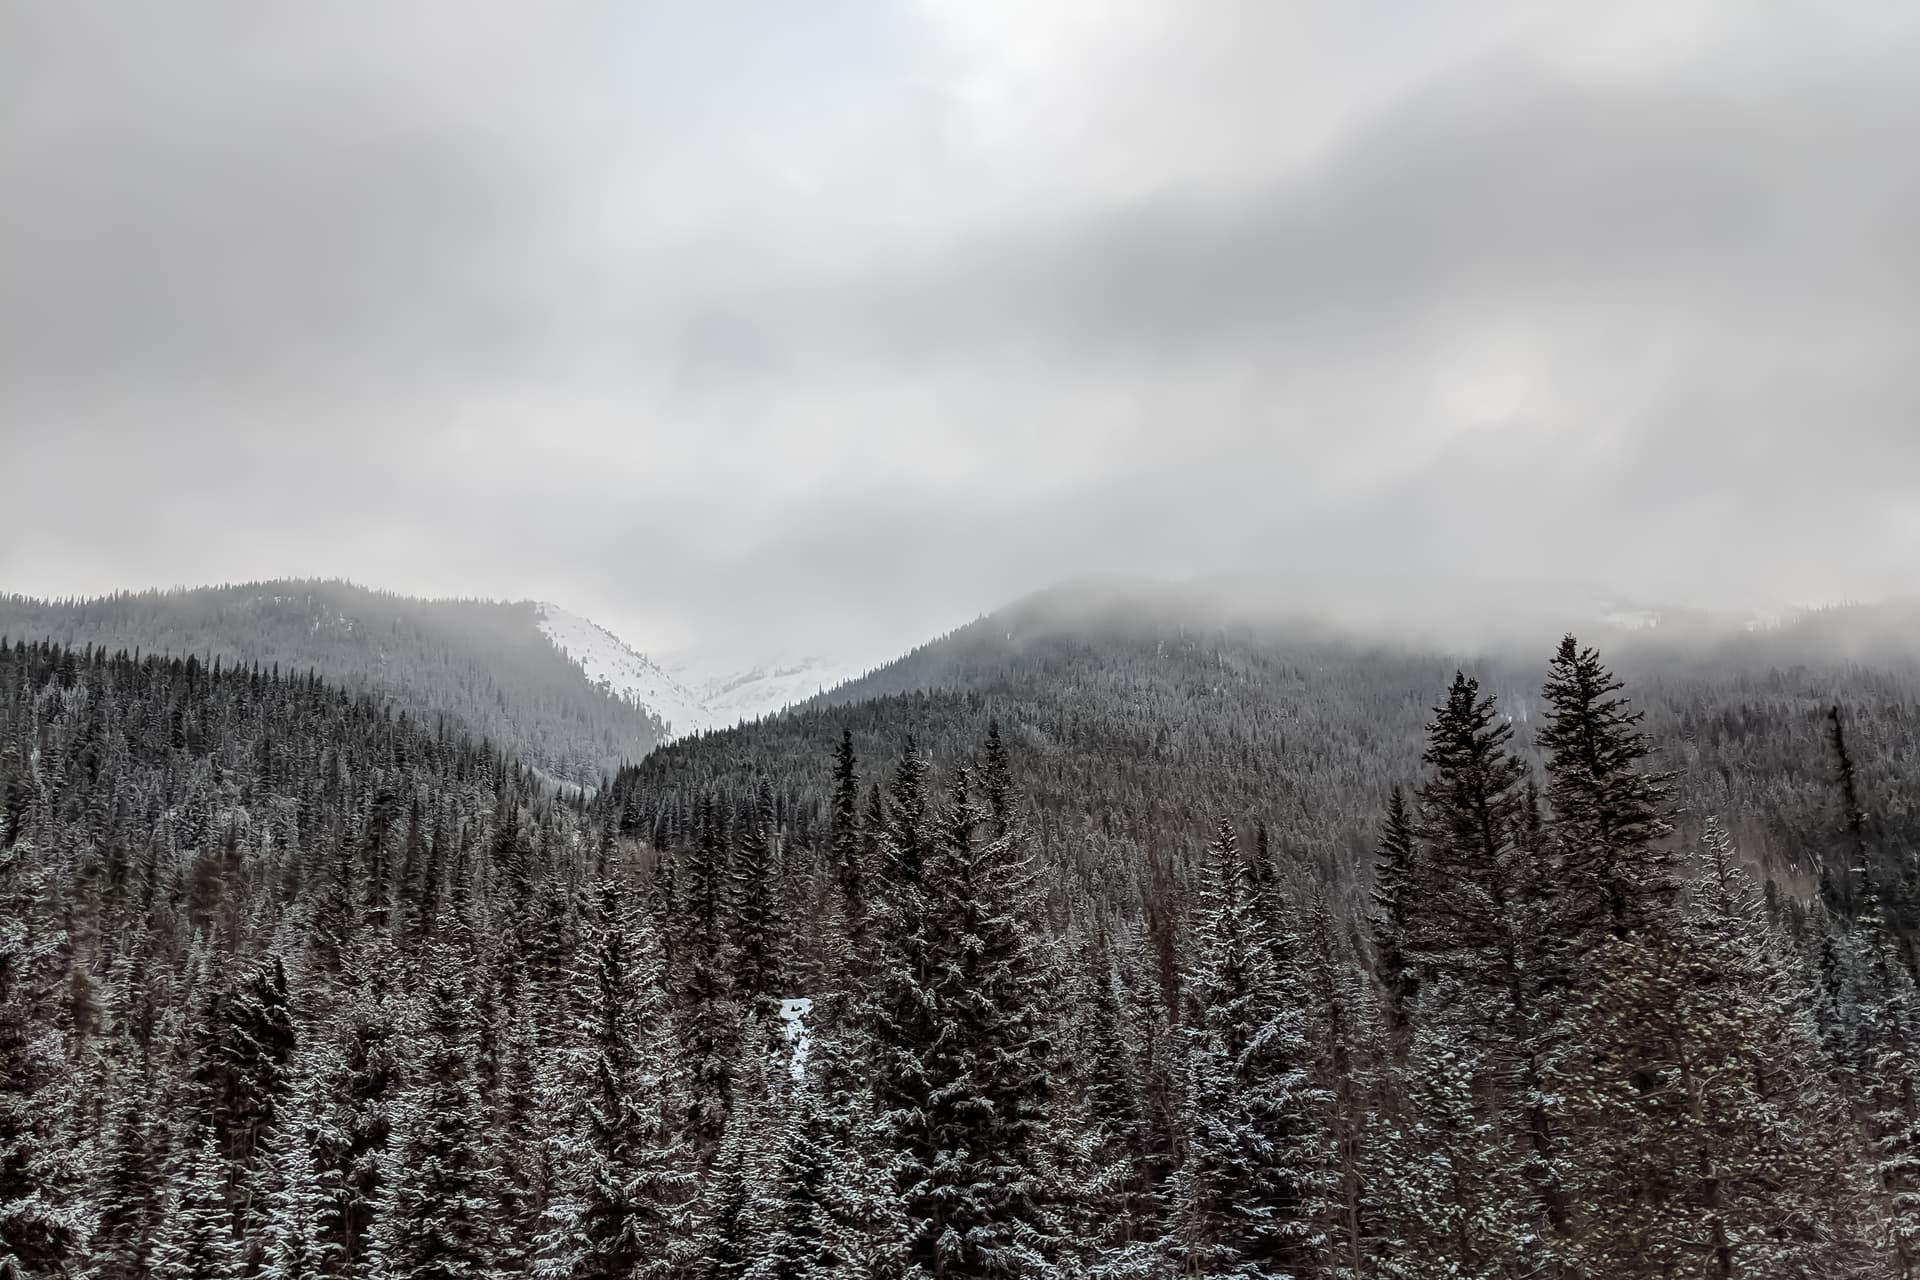 Cold, snow-covered peaks rise out of a pine forest. The clouds of a recently departed snow storm still obscure some of the peaks.